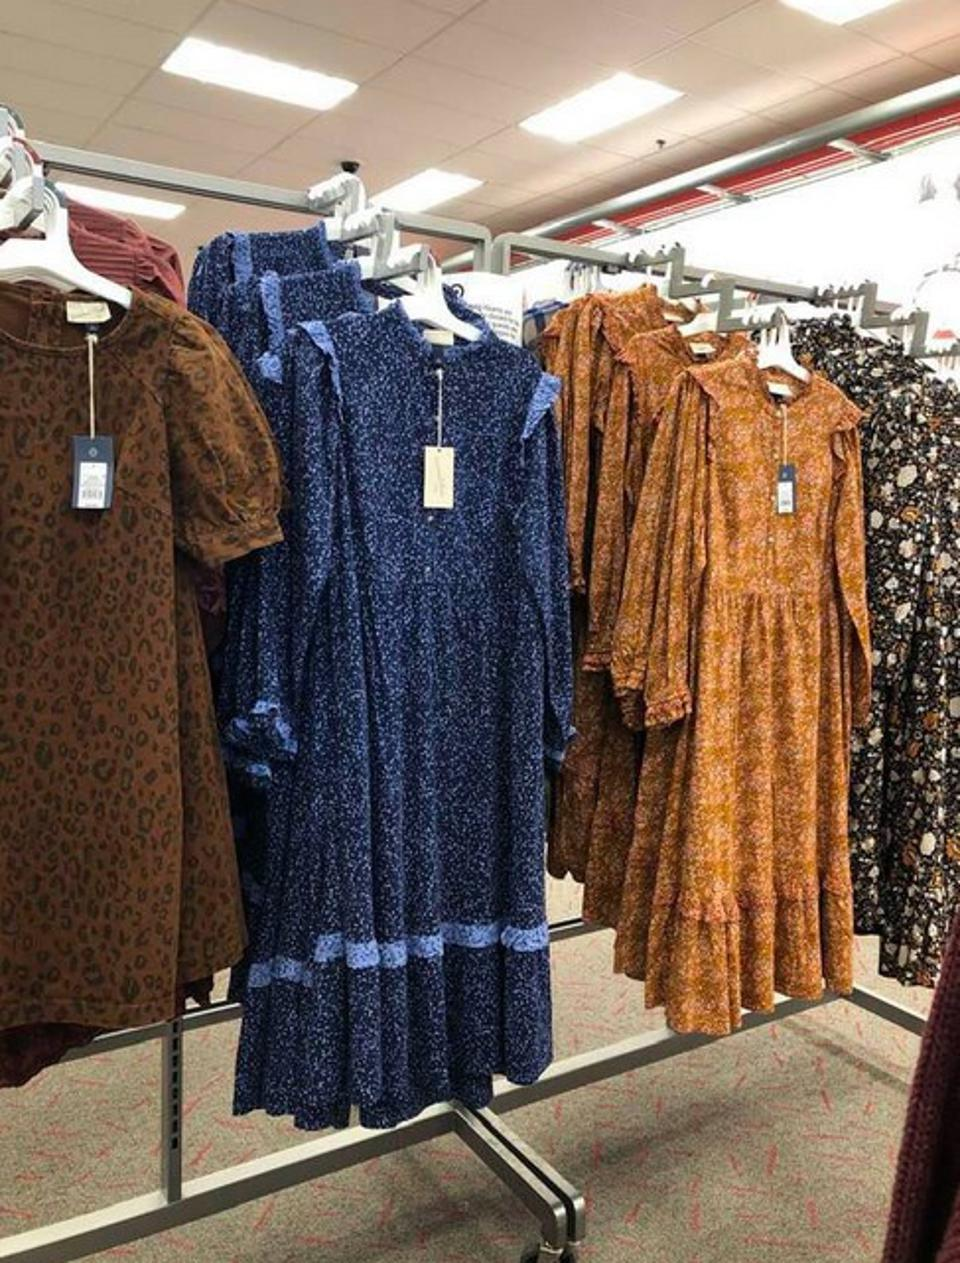 An in-store metal display rack at Target with four floral prairie dresses hanging on hangers.